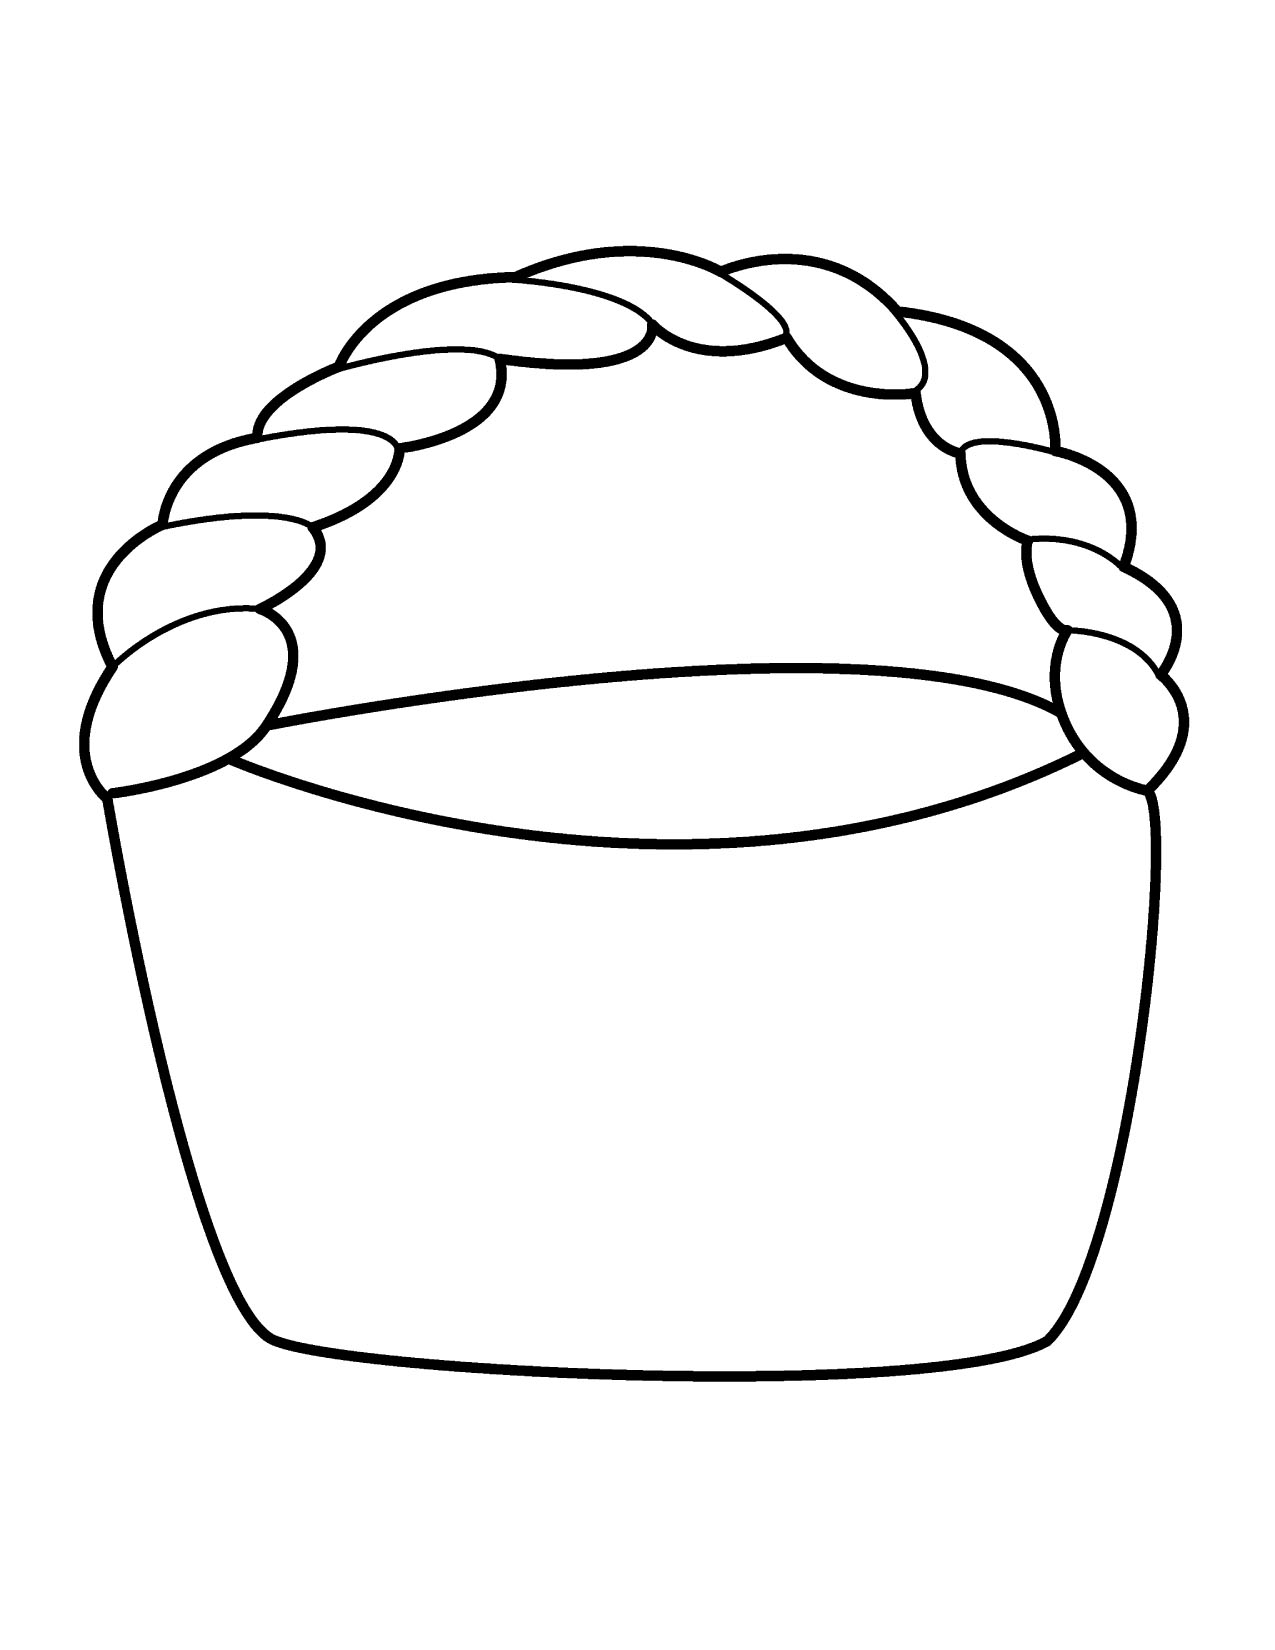 Flower Basket Line Drawing : Apple basket clipart panda free images